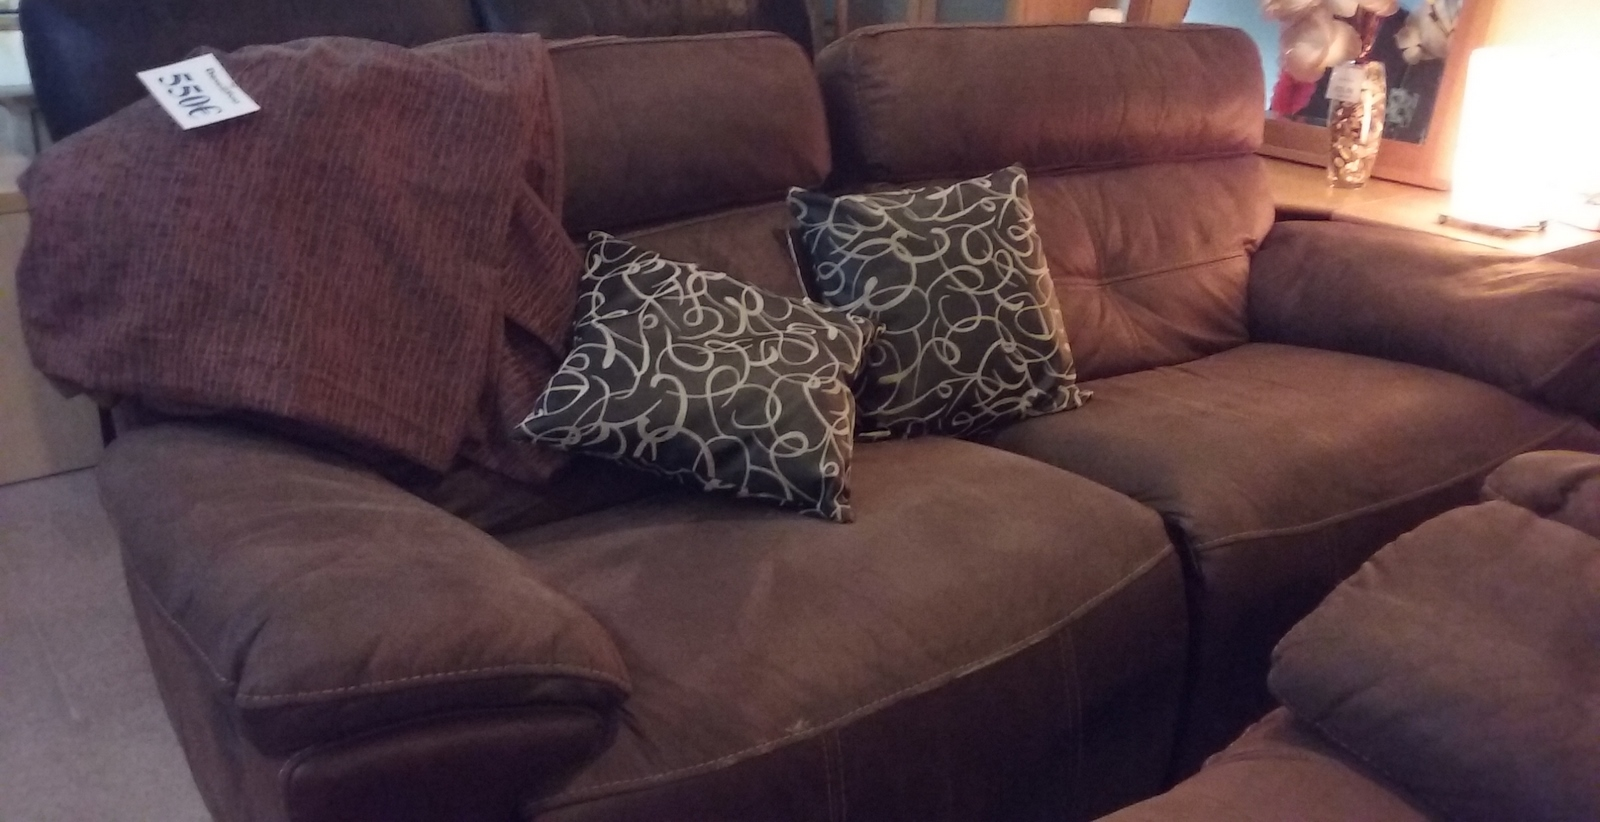 New2you furniture second hand sofas sofa beds for the for Furniture 3 piece suites